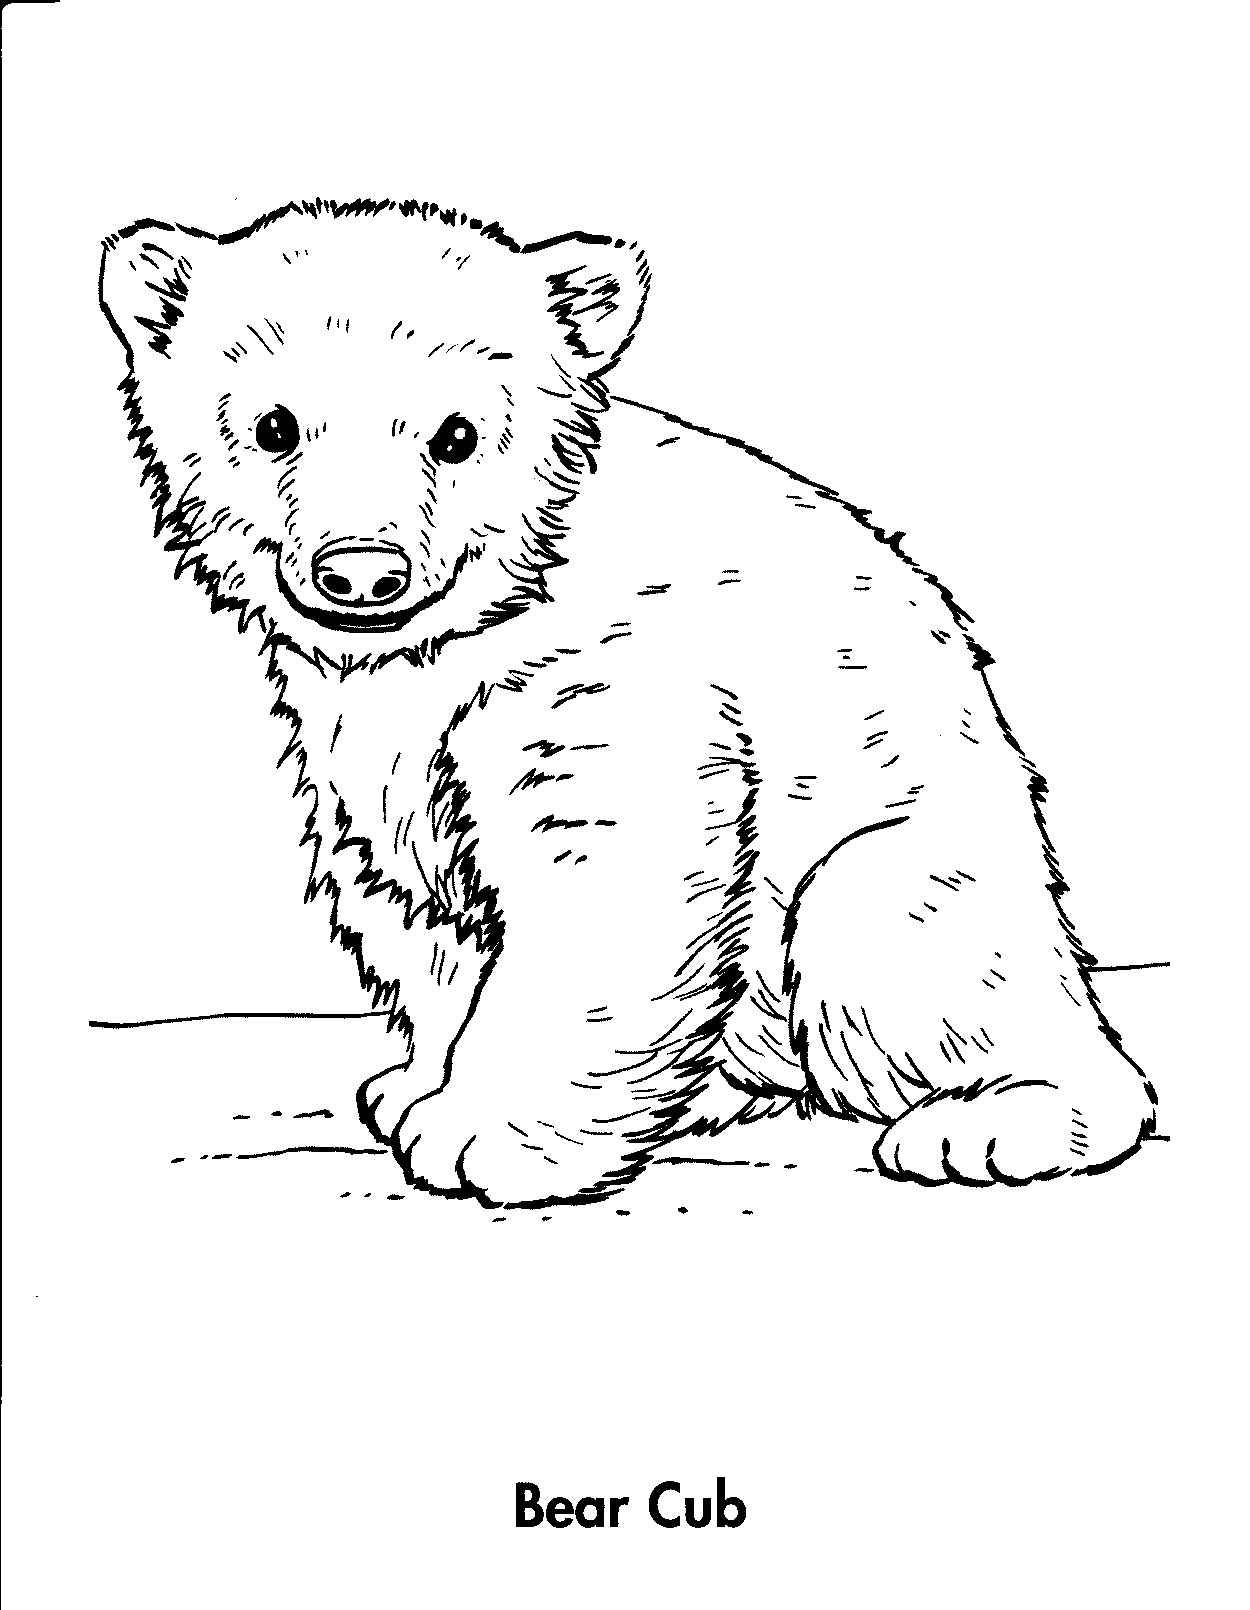 bear line drawing bear line drawing at getdrawings free download line drawing bear